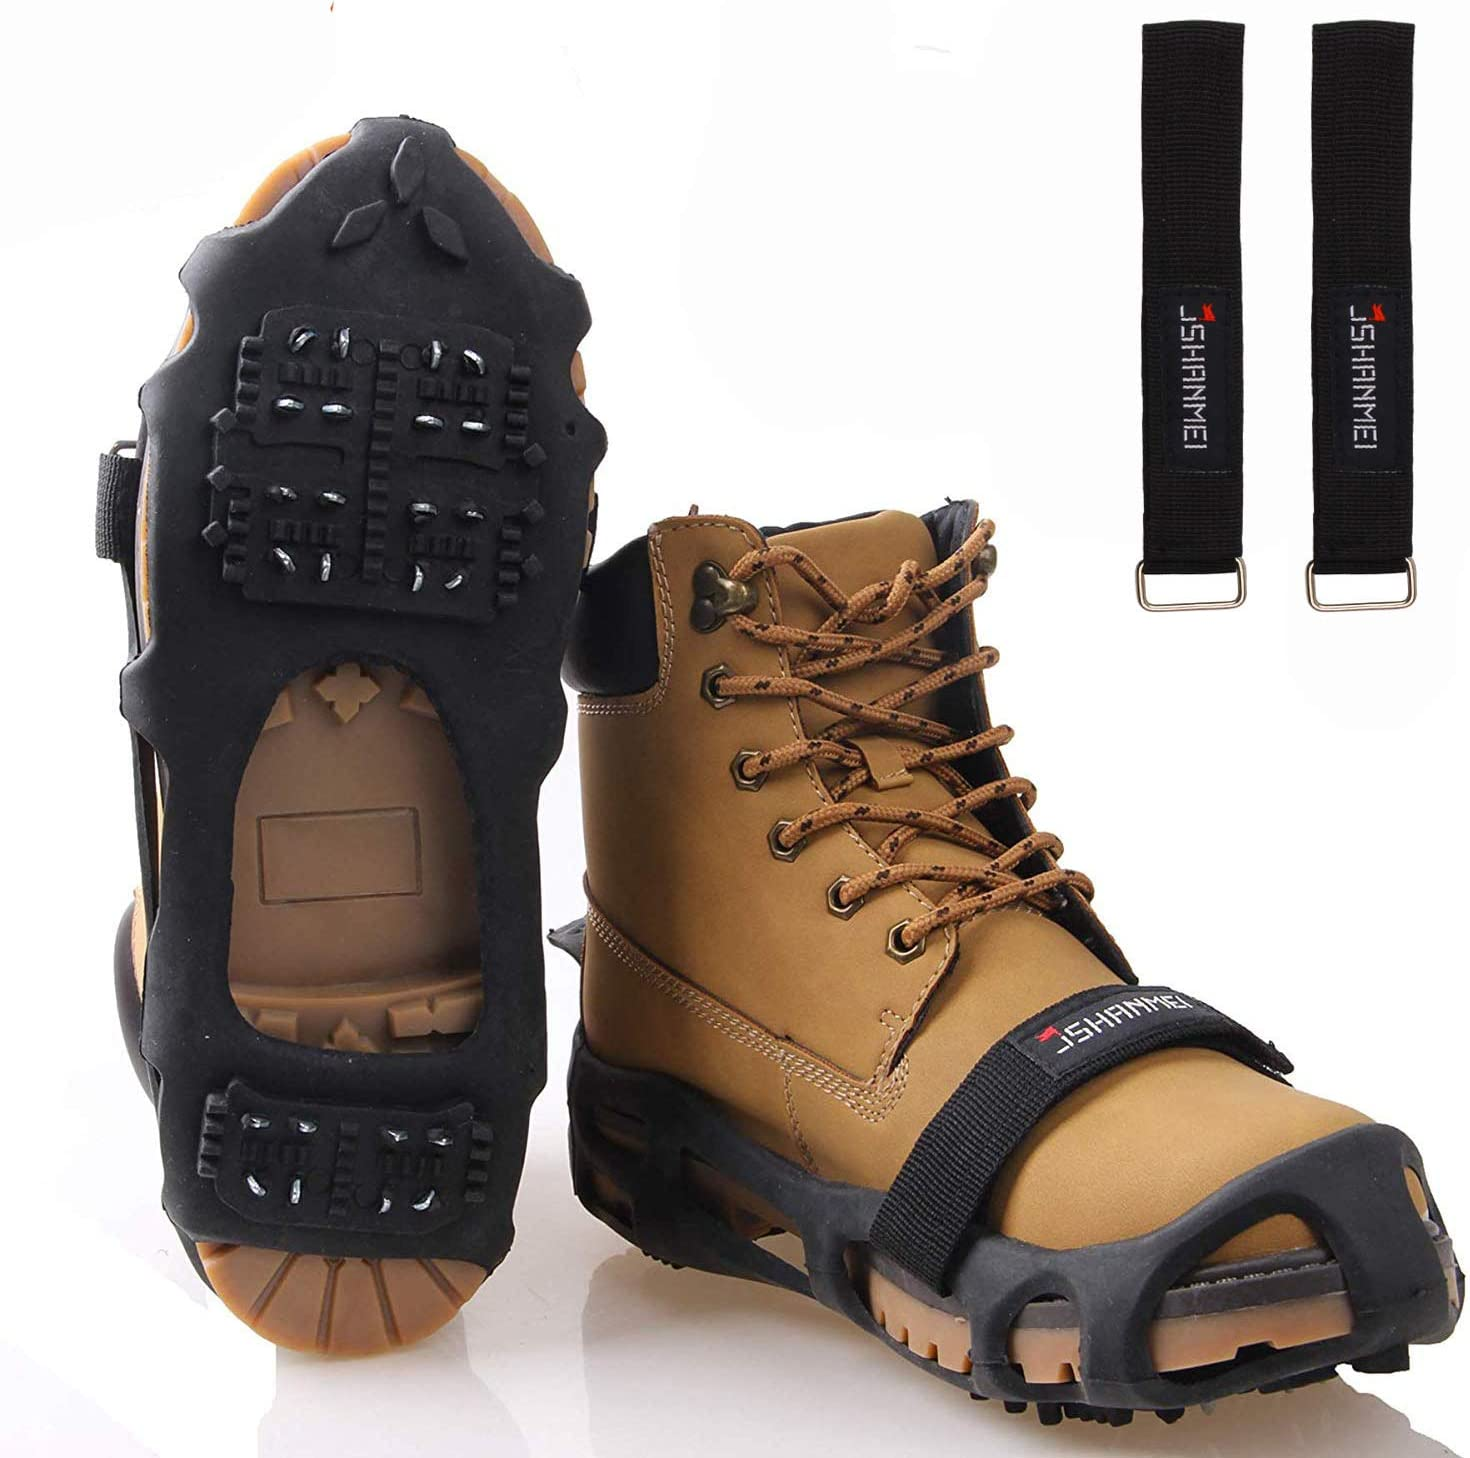 JSHANMEI Traction Ice Cleat Spikes Crampons Snow Grips Anti Slip Safe Protect Slip-on Stretch Footwear for Hiking Walking on Snow and Ice